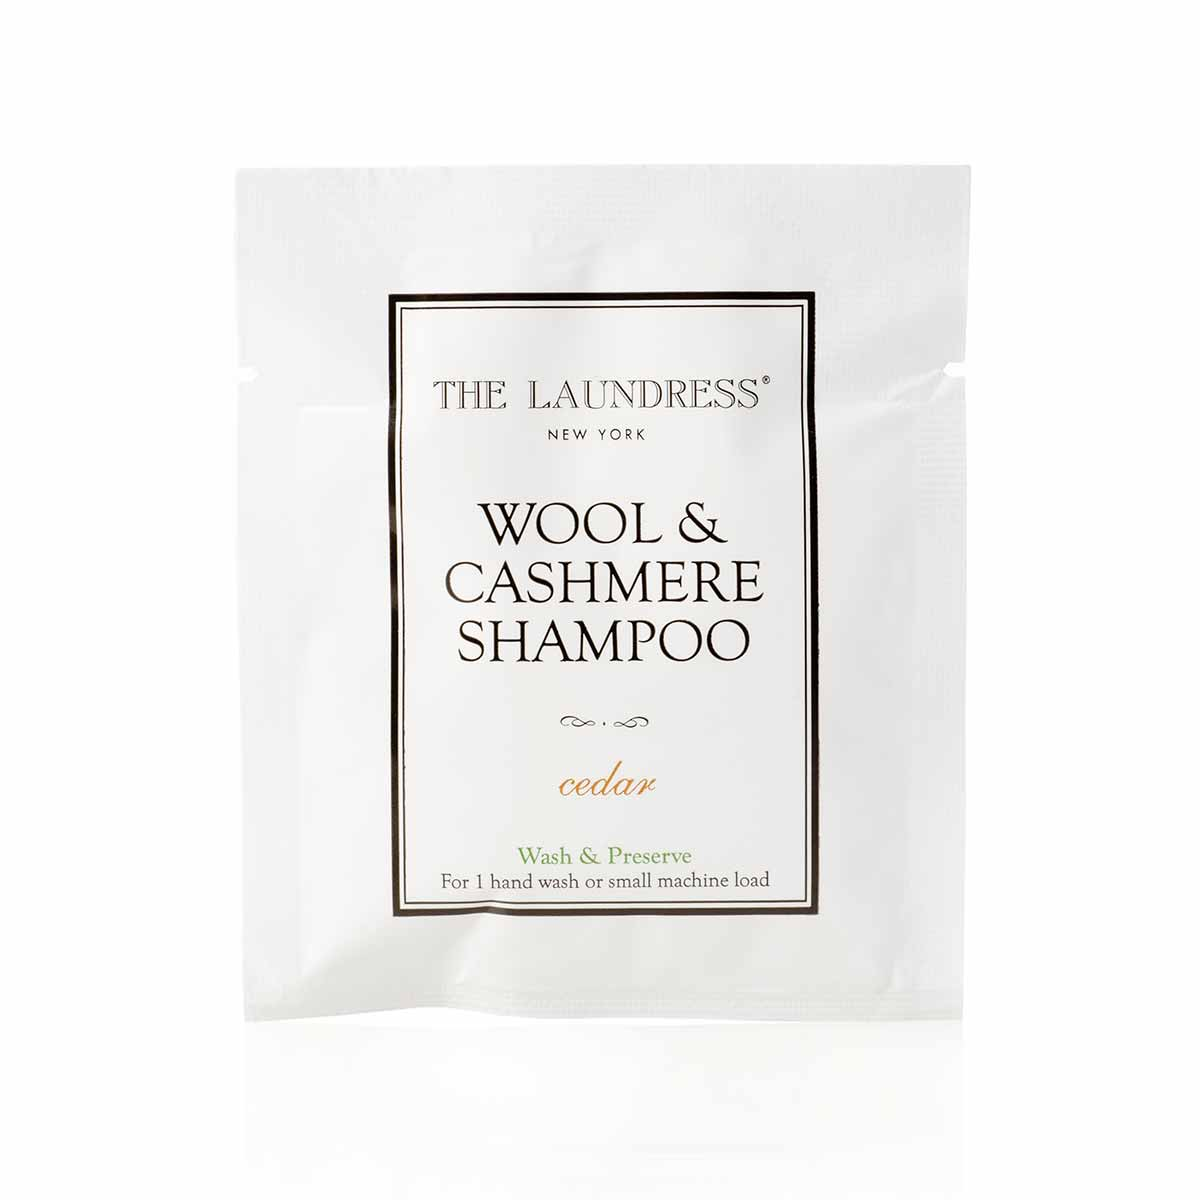 The Laundress Wool & Cashmere Shampoo Sachet-Amicale Cashmere